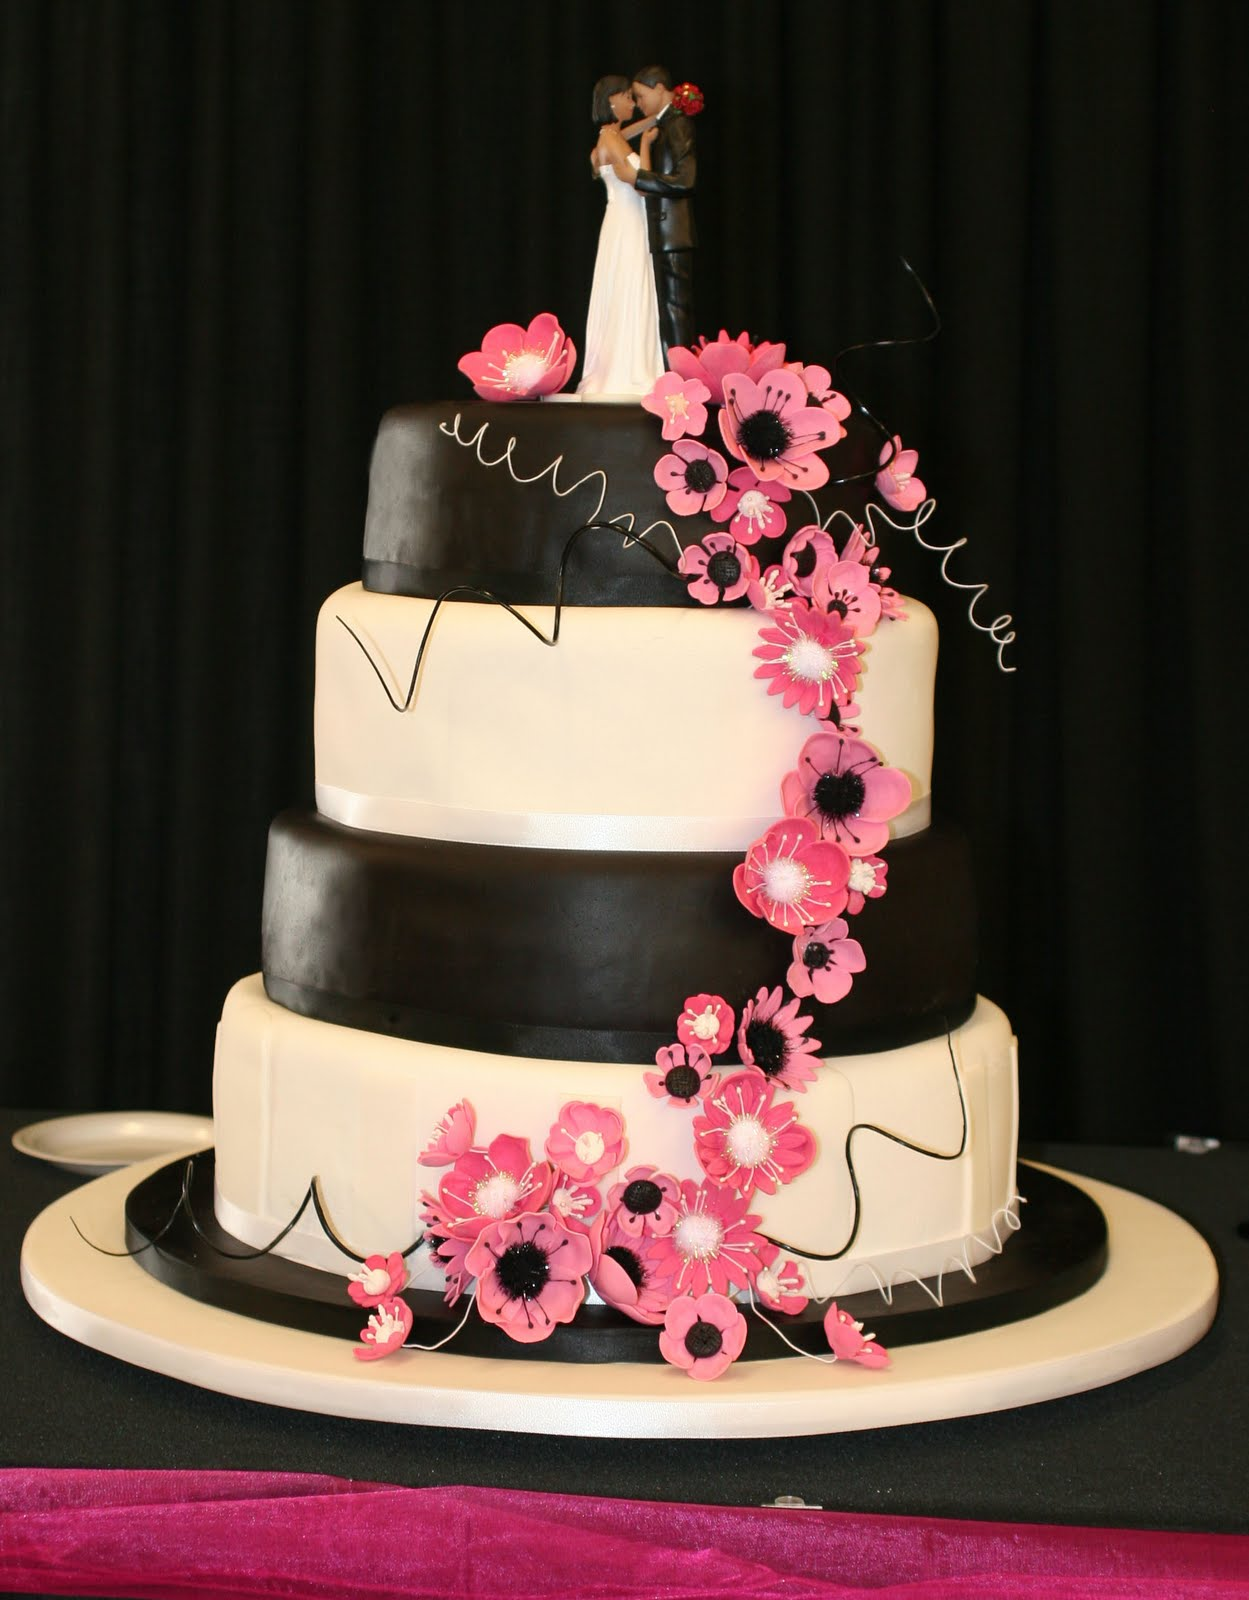 Cakes images wedding cake hd wallpaper and background photos - Do You Like To Share This Pictures Of Wedding Cakes Disclaimer All Wallpapers And Backgrounds